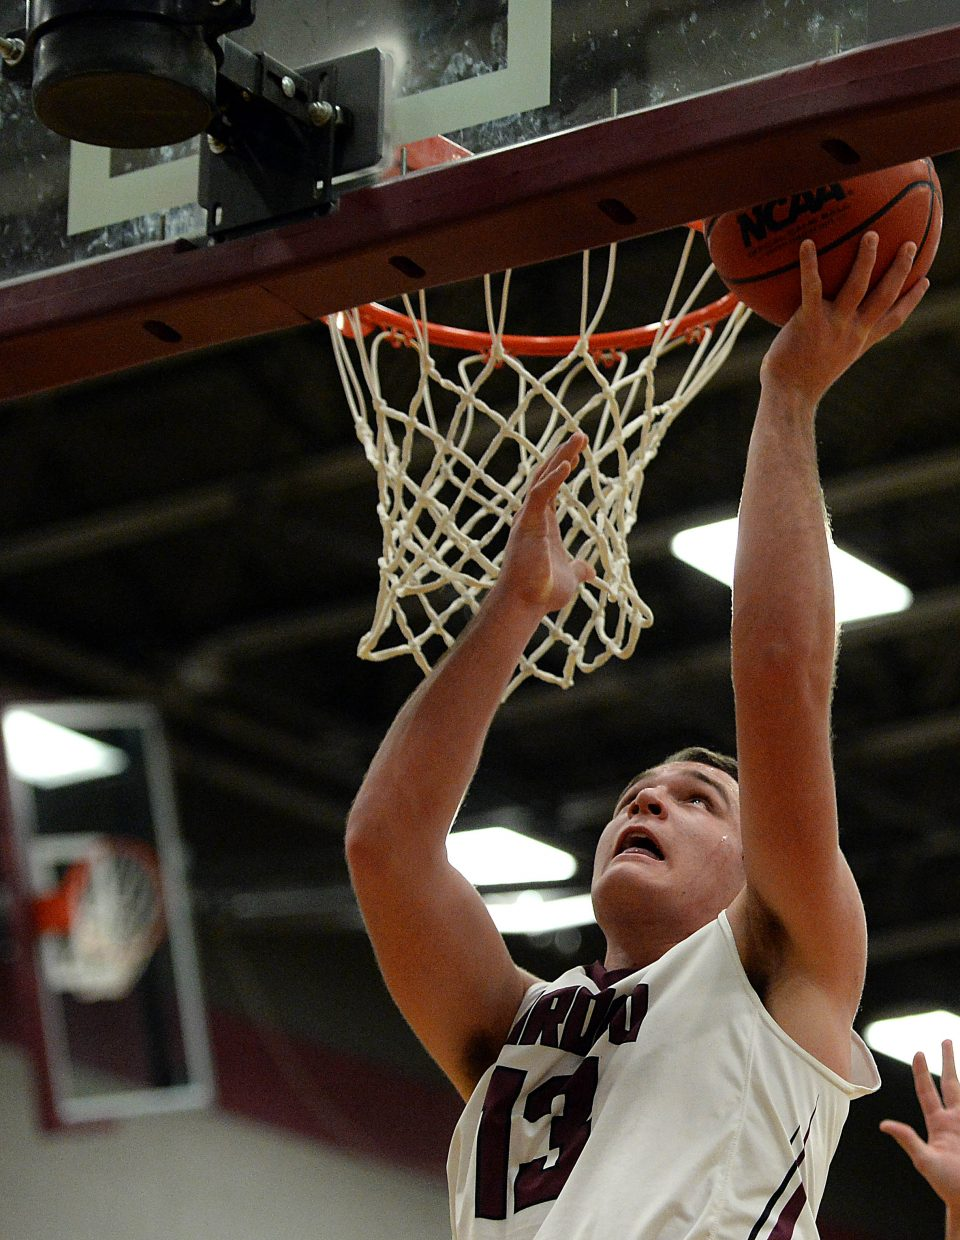 Ryan Jeep puts up two points Wednesday against Vail Christian.